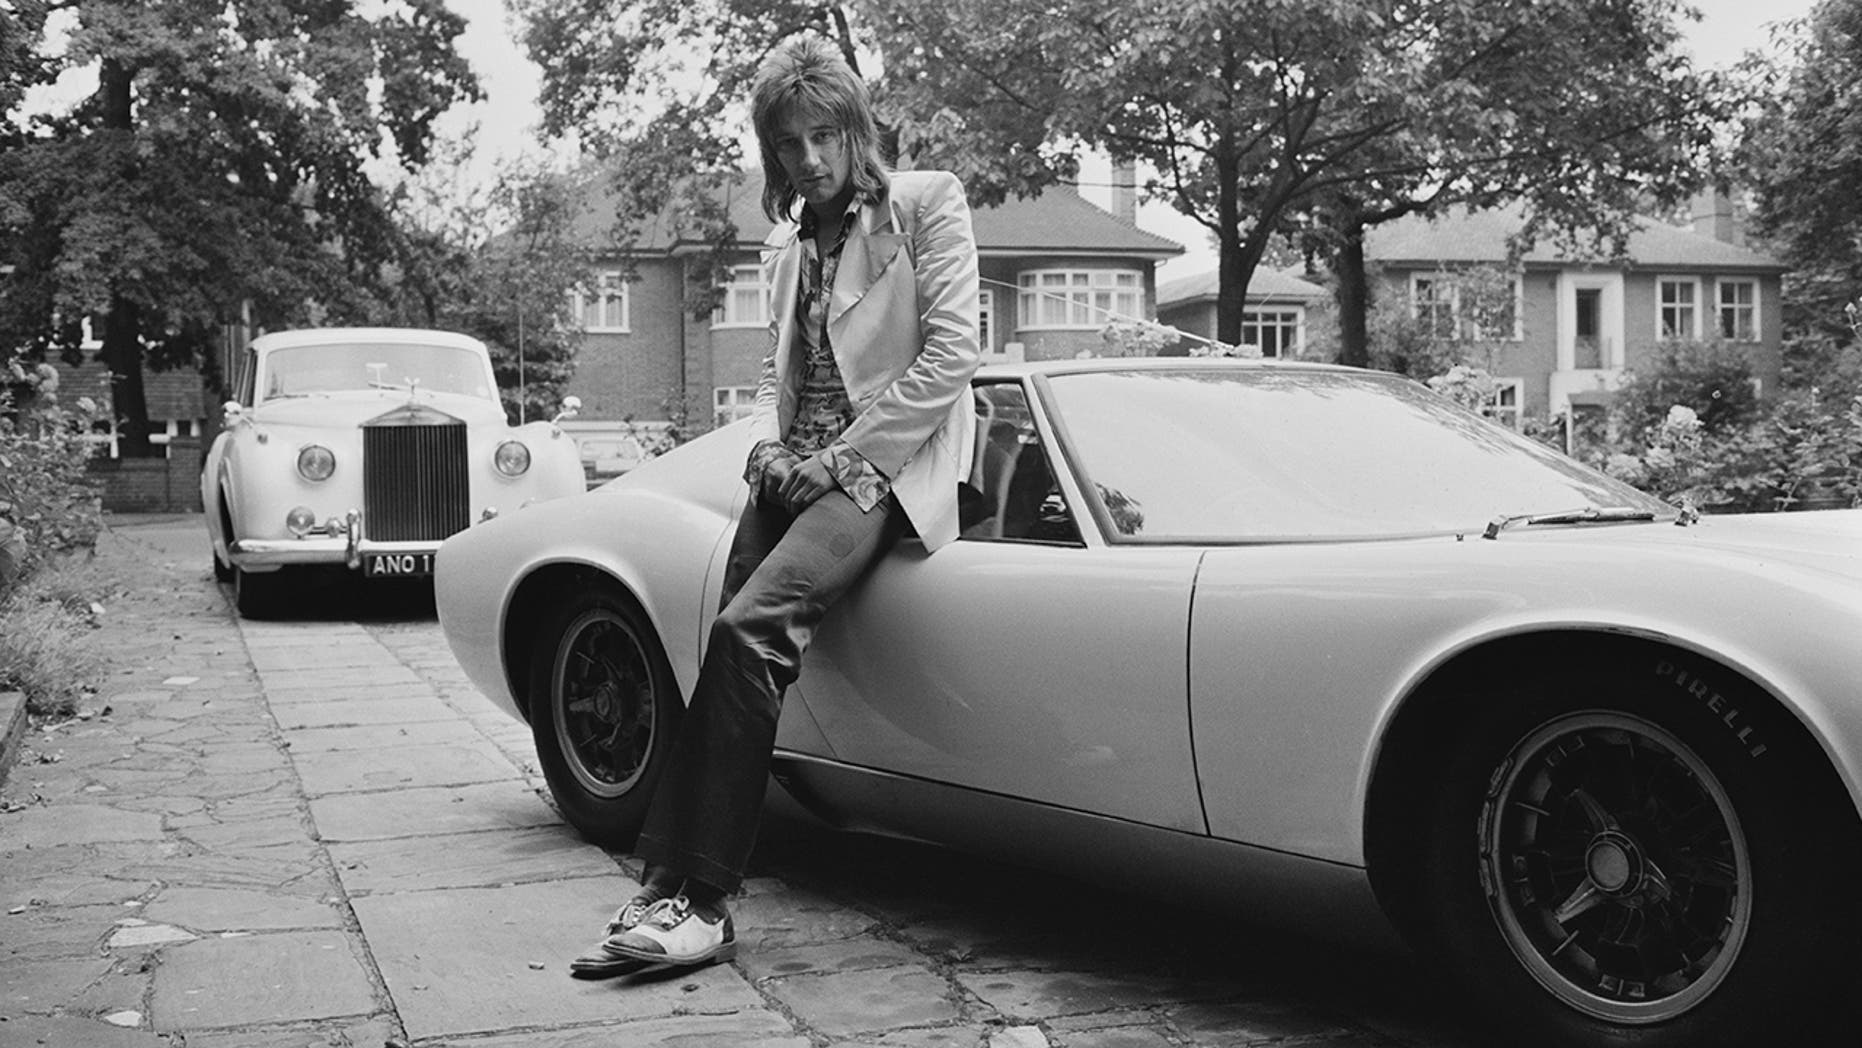 Rod Stewart S Historic 1971 Lamborghini Miura Expected To Sell For A